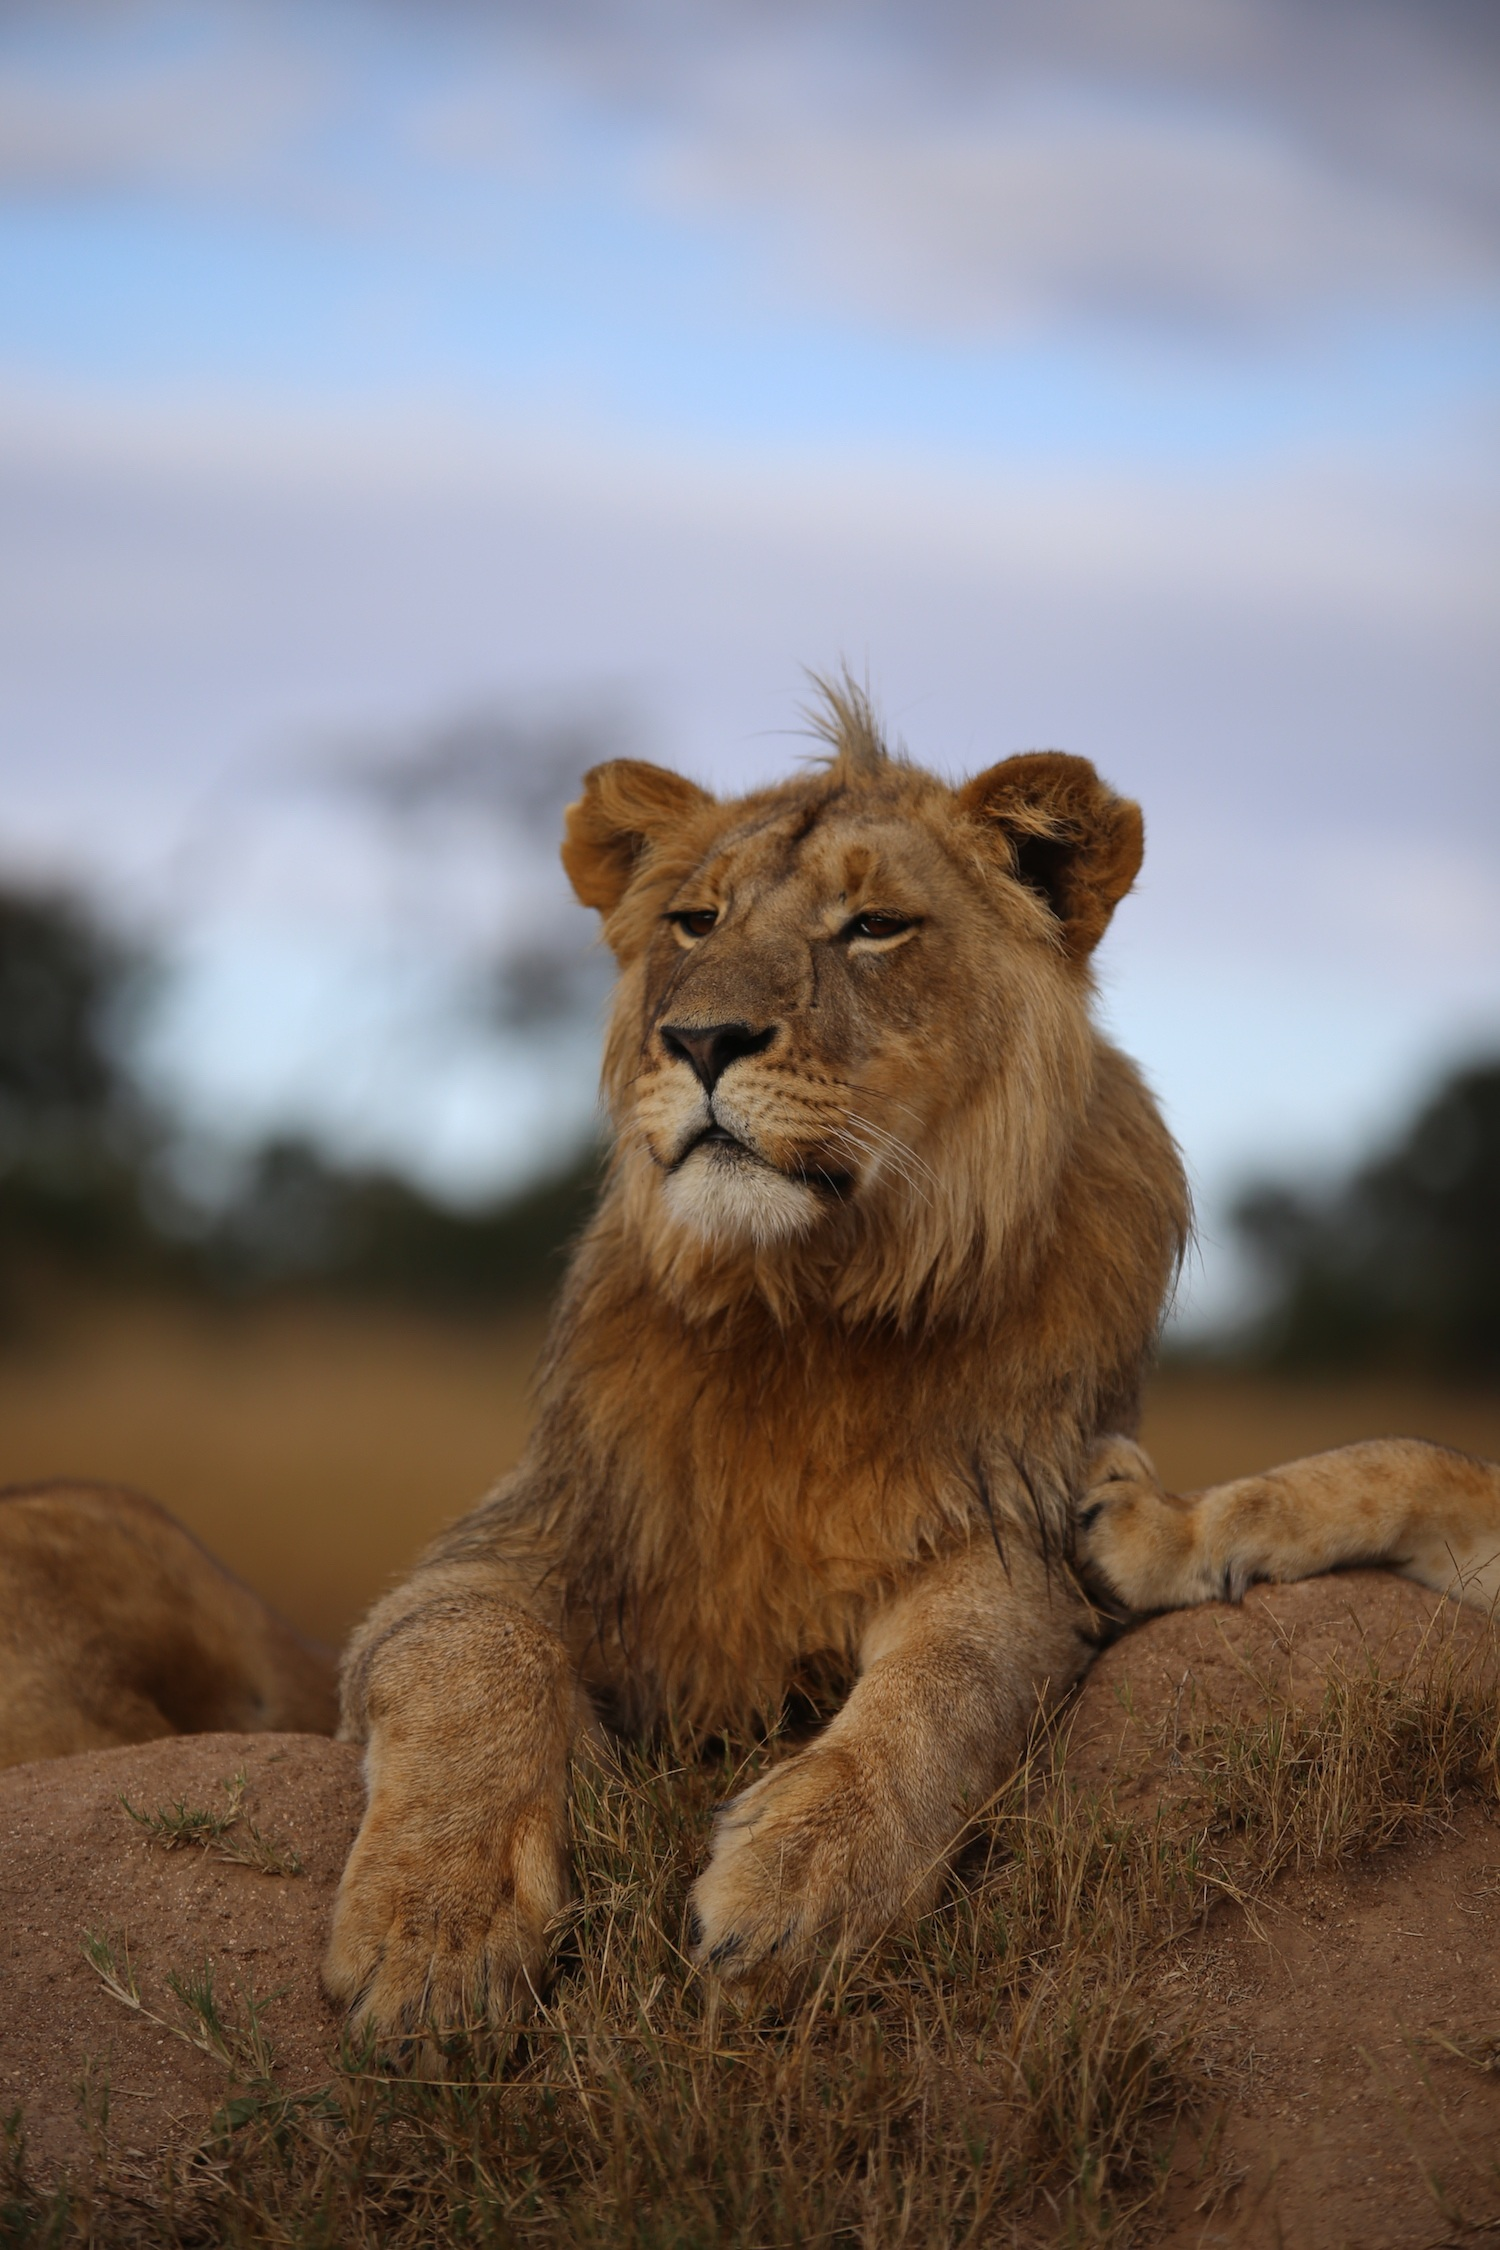 65165 download wallpaper Animals, Lion, Savanna, Wildlife, Sight, Opinion, Proud, Predator screensavers and pictures for free